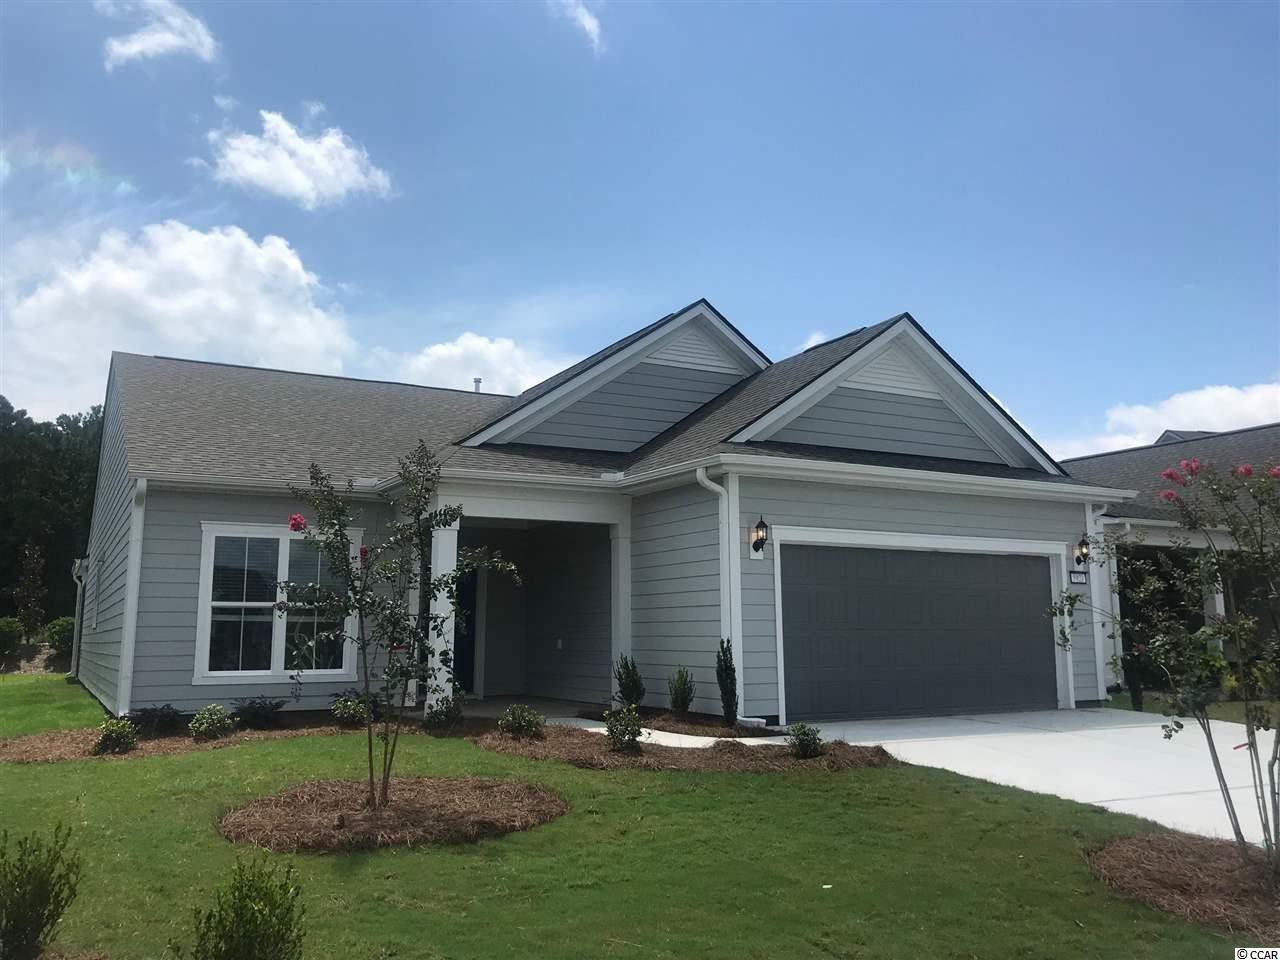 Martin Ray Floorplan with 3-bedroom/2-Bath , Library, Screened Lanai with Cascading Glass Slider doors, Fully Tiled Huge Walk-in Master Shower, Walk-in Master Closet. Walk-up Attic Storage over garage, Natural gas community, Tankless Water Heater and 2-car garage.